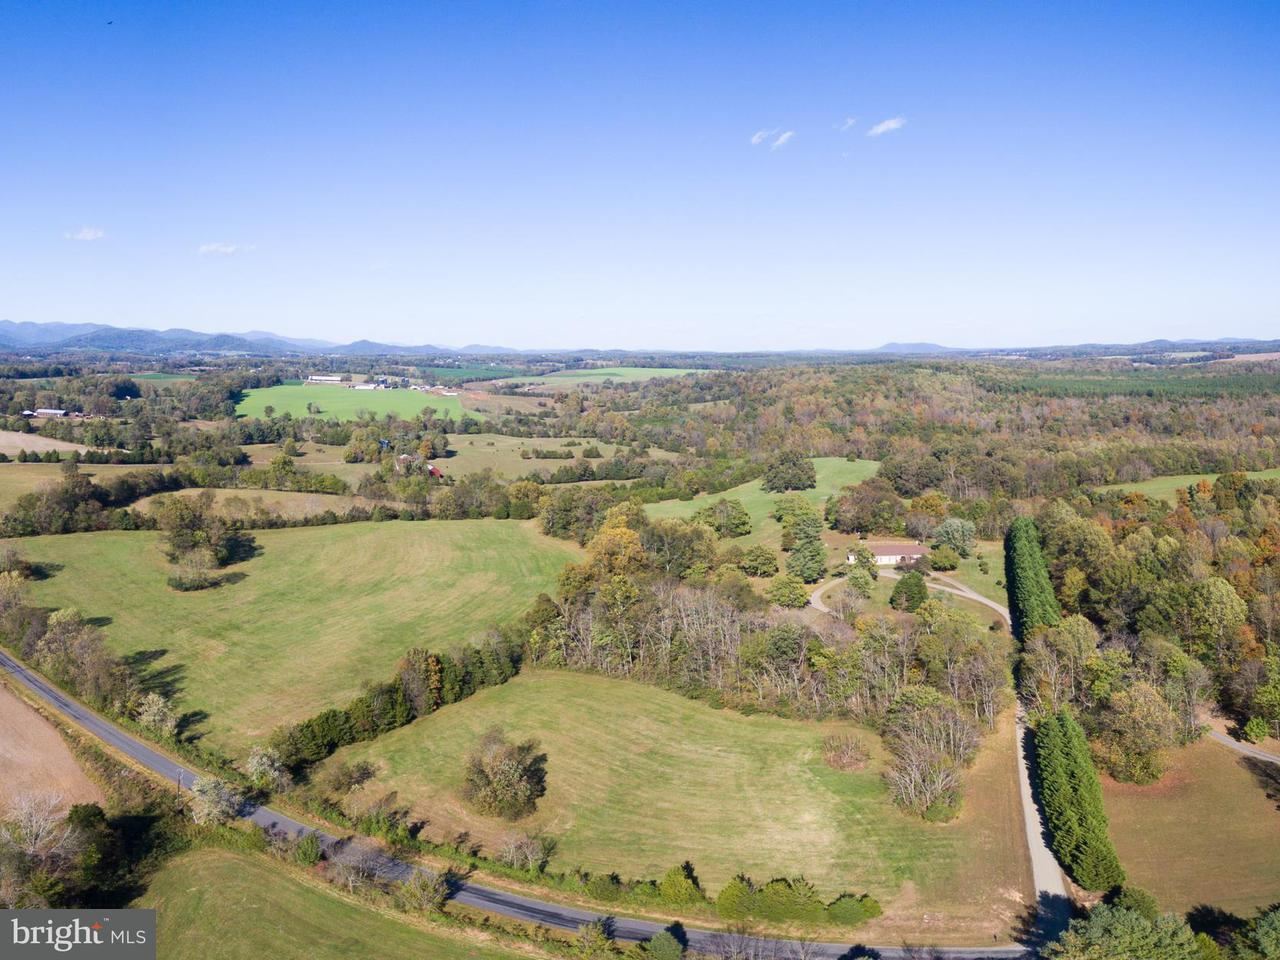 Land for Sale at Jacks Shop Rd Rochelle, Virginia 22738 United States